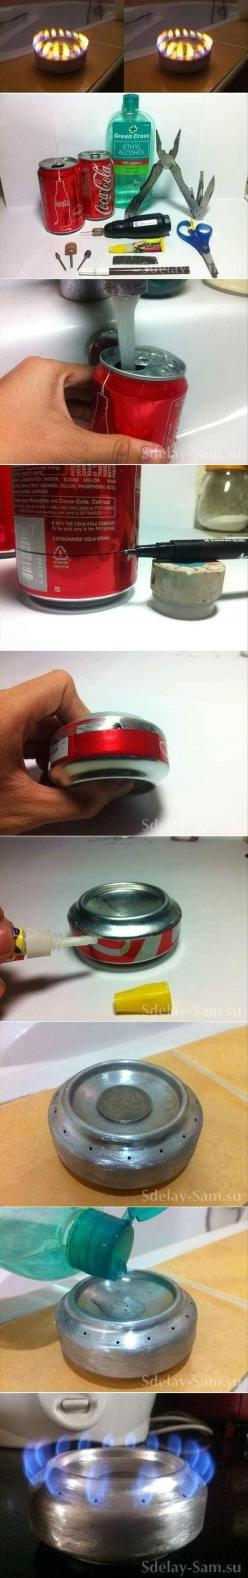 DIY alcohol stove from a soda can: Diy'S, Camping, Diy Craft, Minis, Craft Ideas, Diy Projects, Crafts